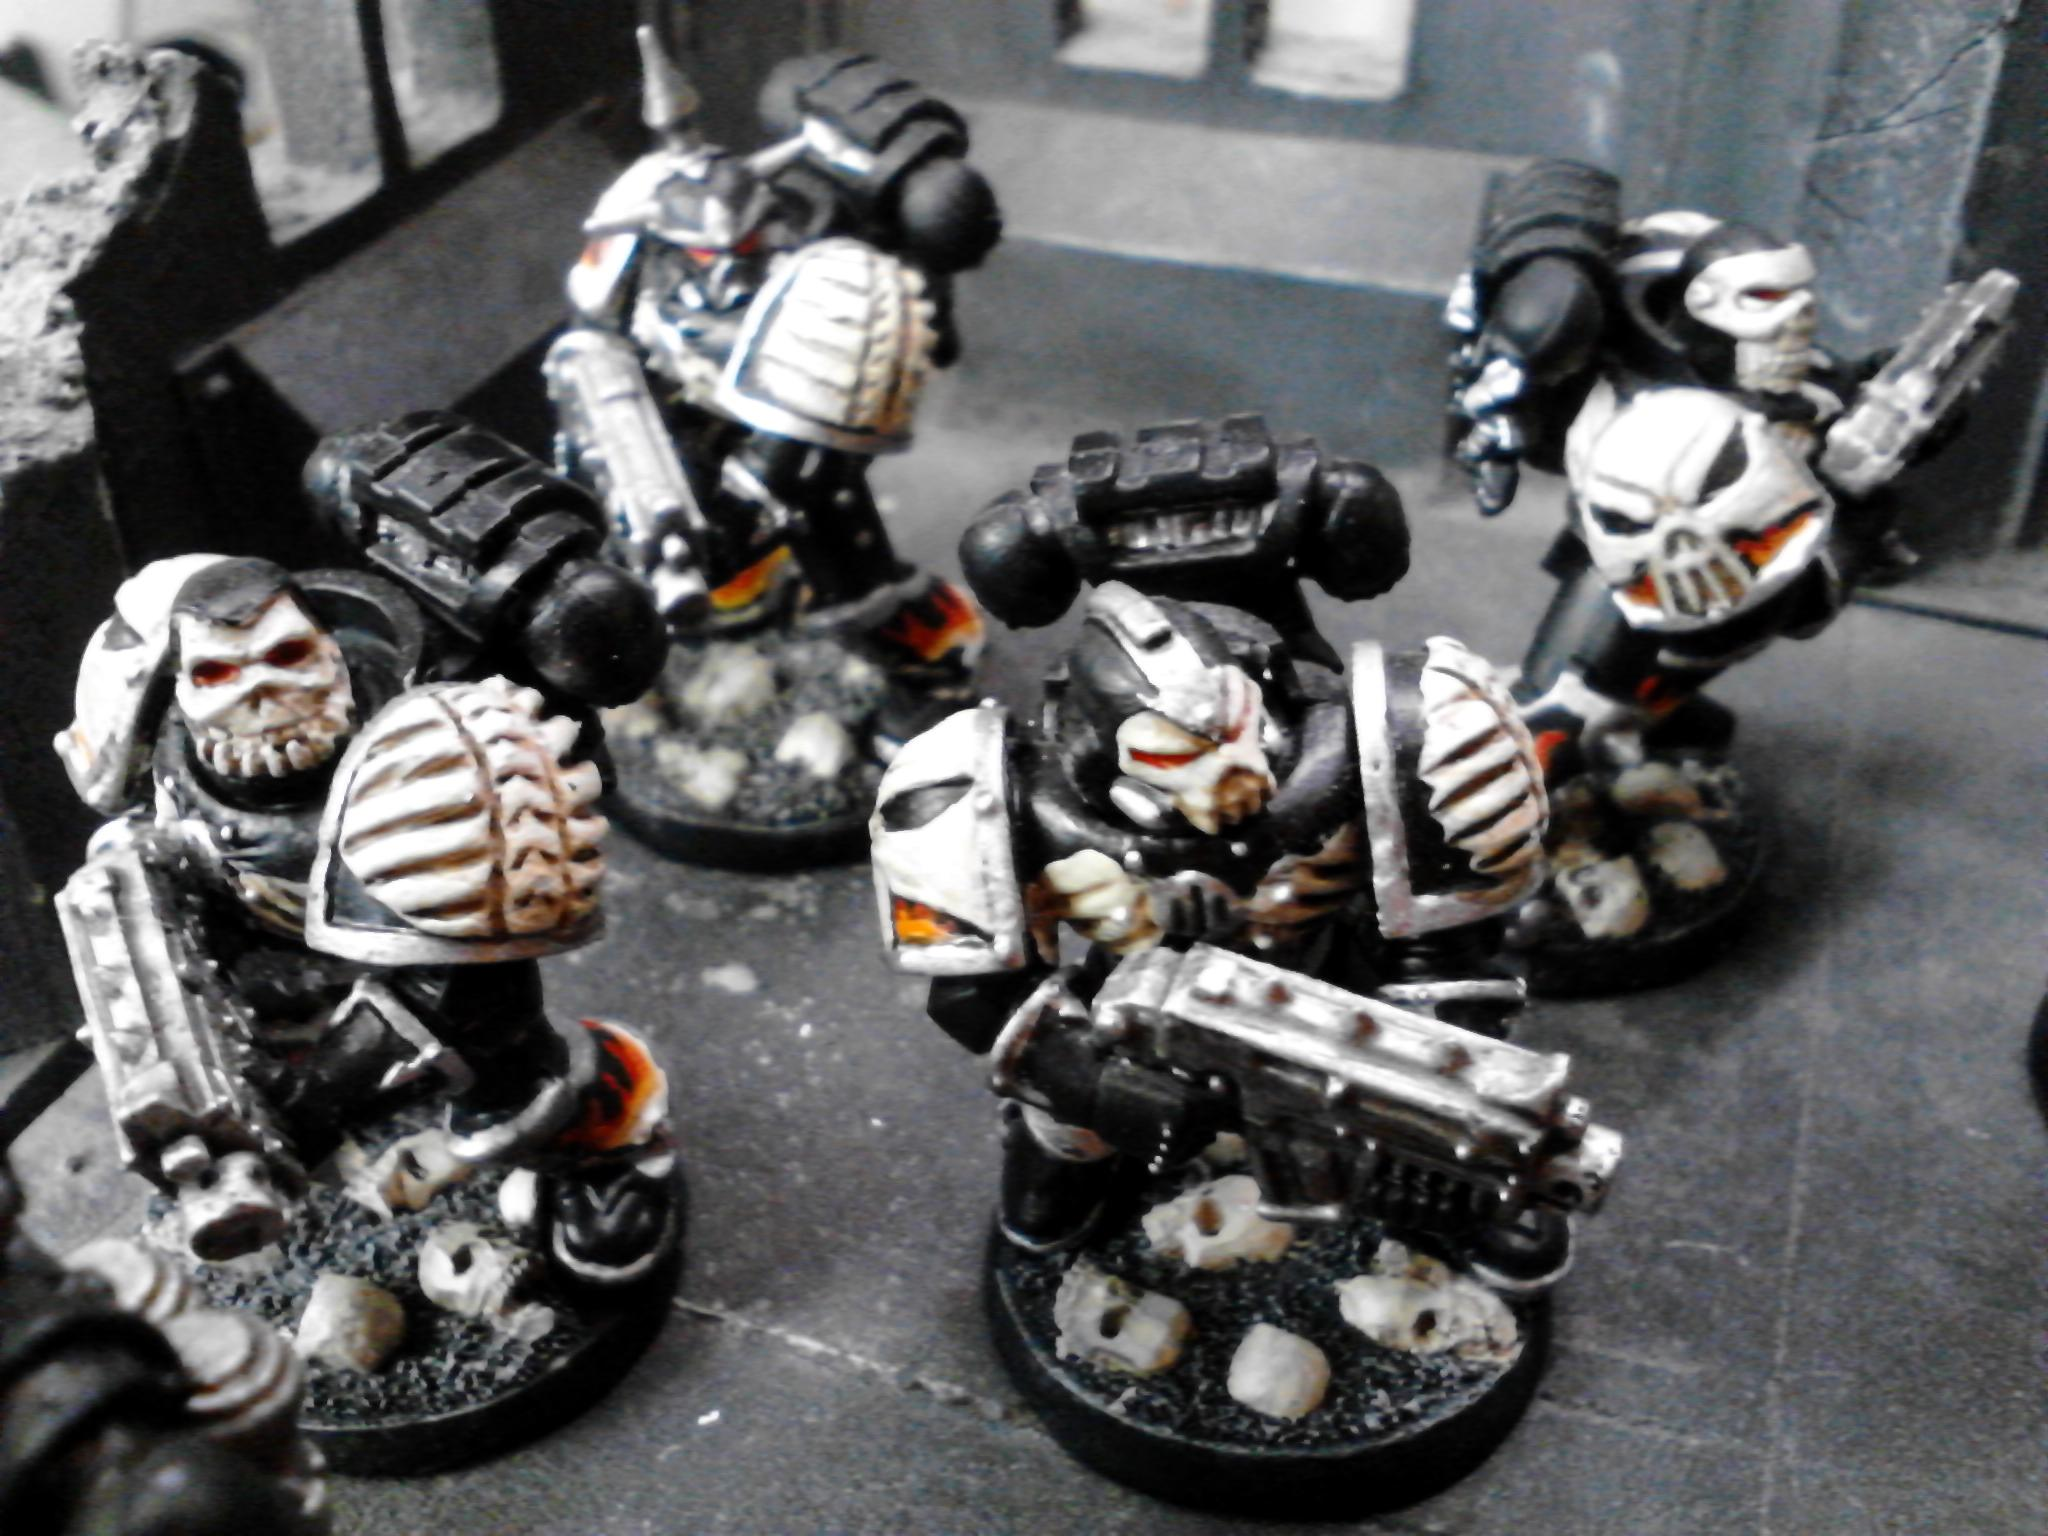 Bolter, Bolters, Budget, Elites, Fire, Fire Hawks, Legion Of The Damned, Multi Melta, Ribs, Skull, Space Marines